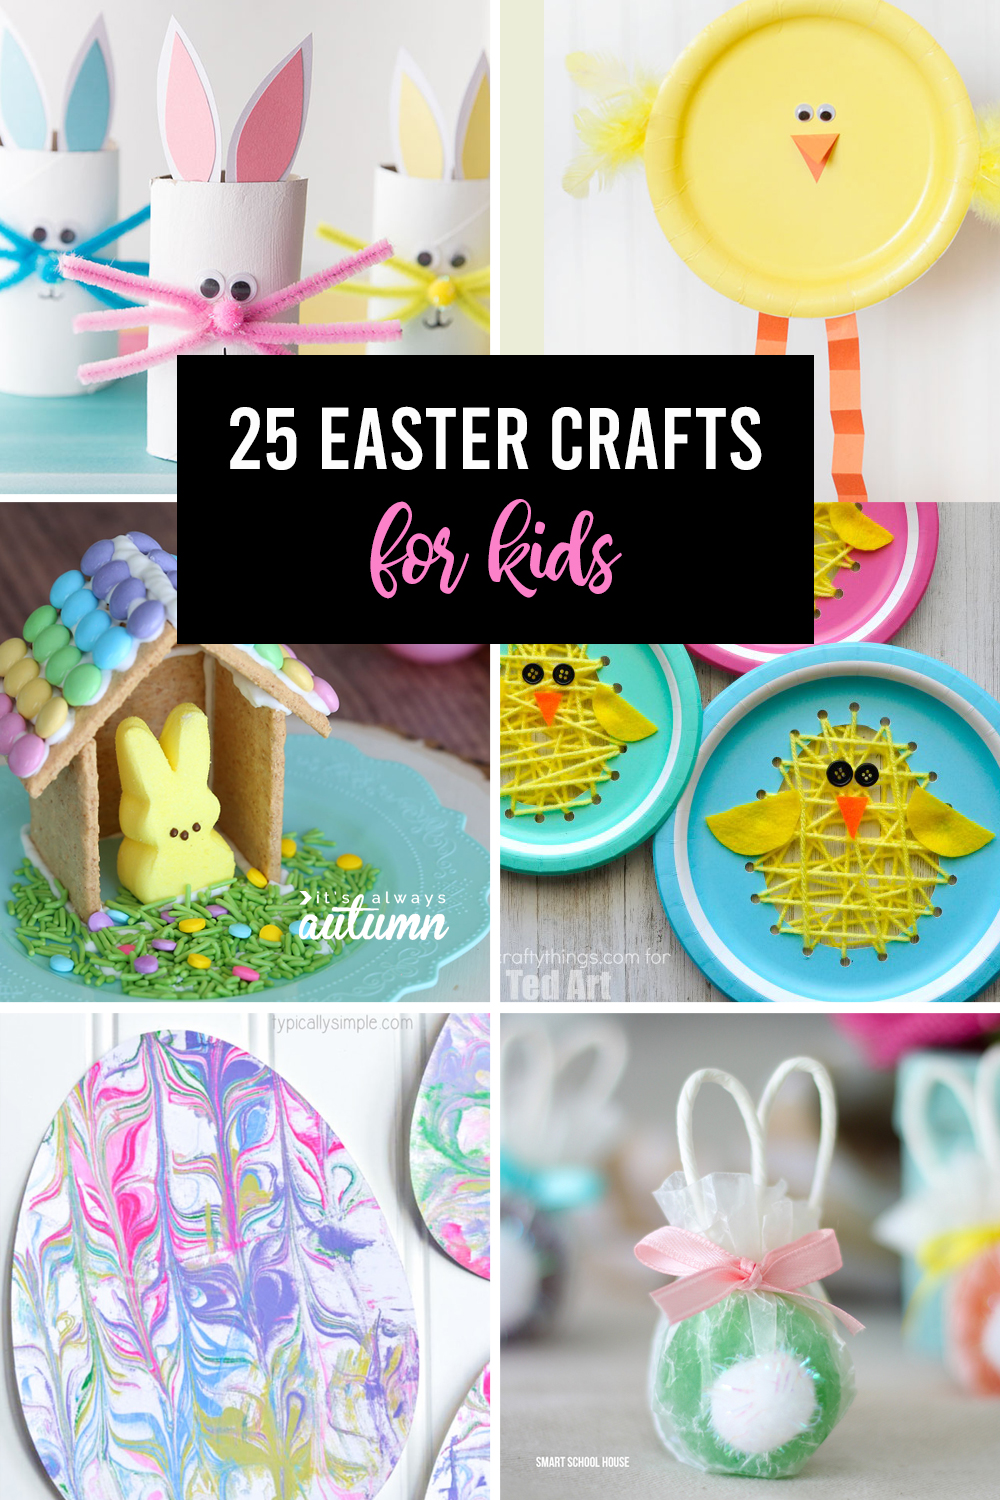 Collage of pictures of different Easter crafts for kids